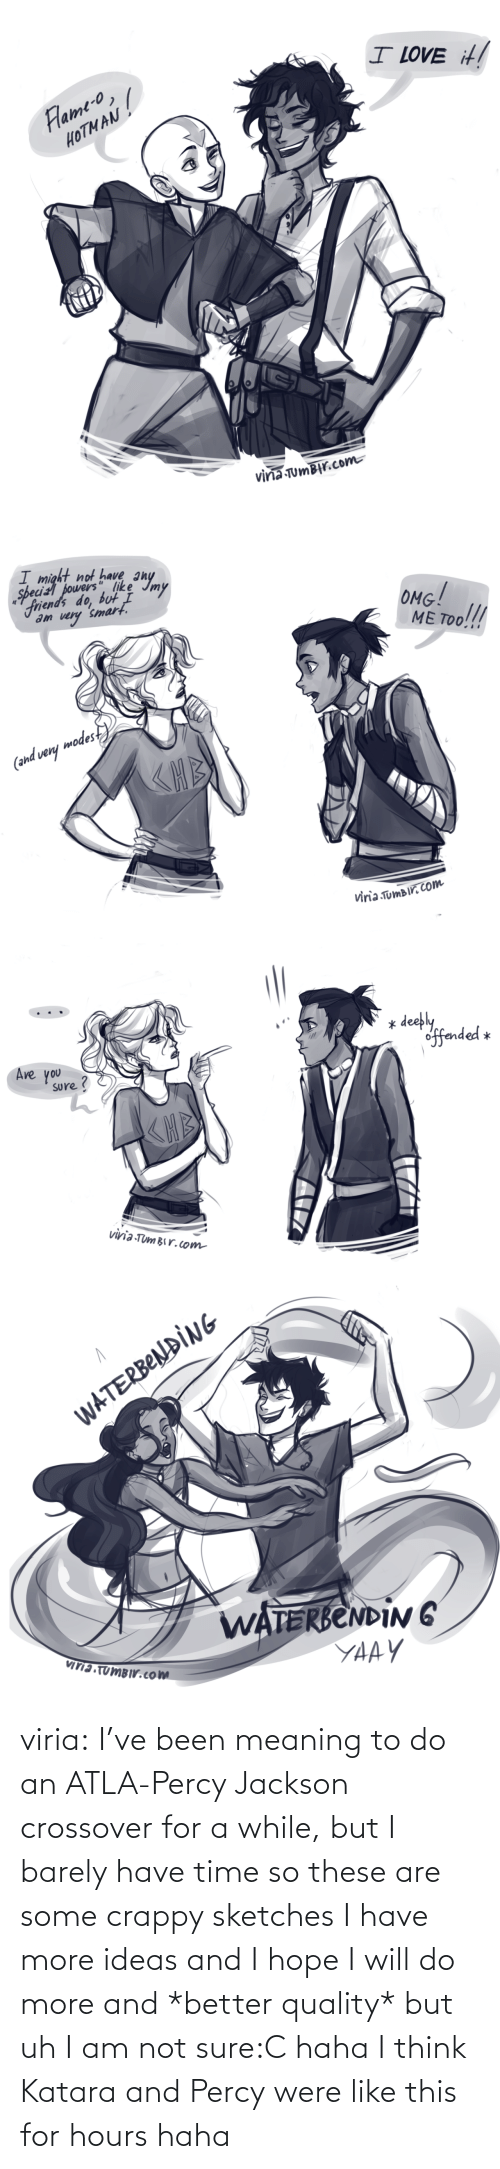 will: viria:  I've been meaning to do an ATLA-Percy Jackson crossover for a while, but I barely have time so these are some crappy sketches I have more ideas and I hope I will do more and *better quality* but uh I am not sure:C haha I think Katara and Percy were like this for hours haha